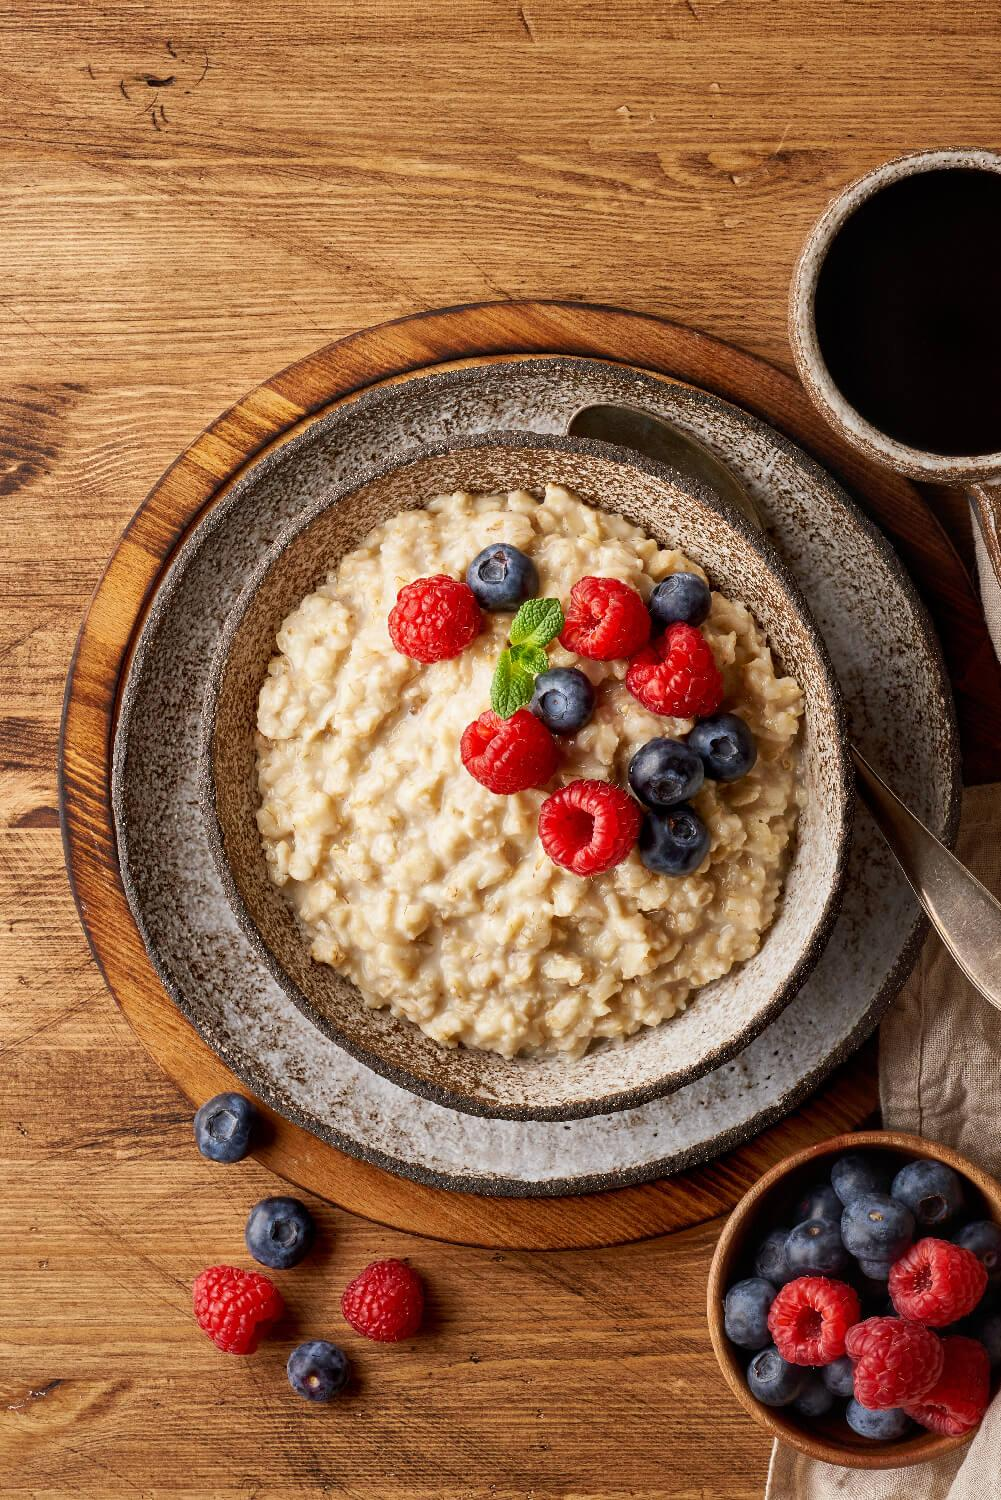 Kickstart your day by taking care of your health with Eco Valley Hearty Oats